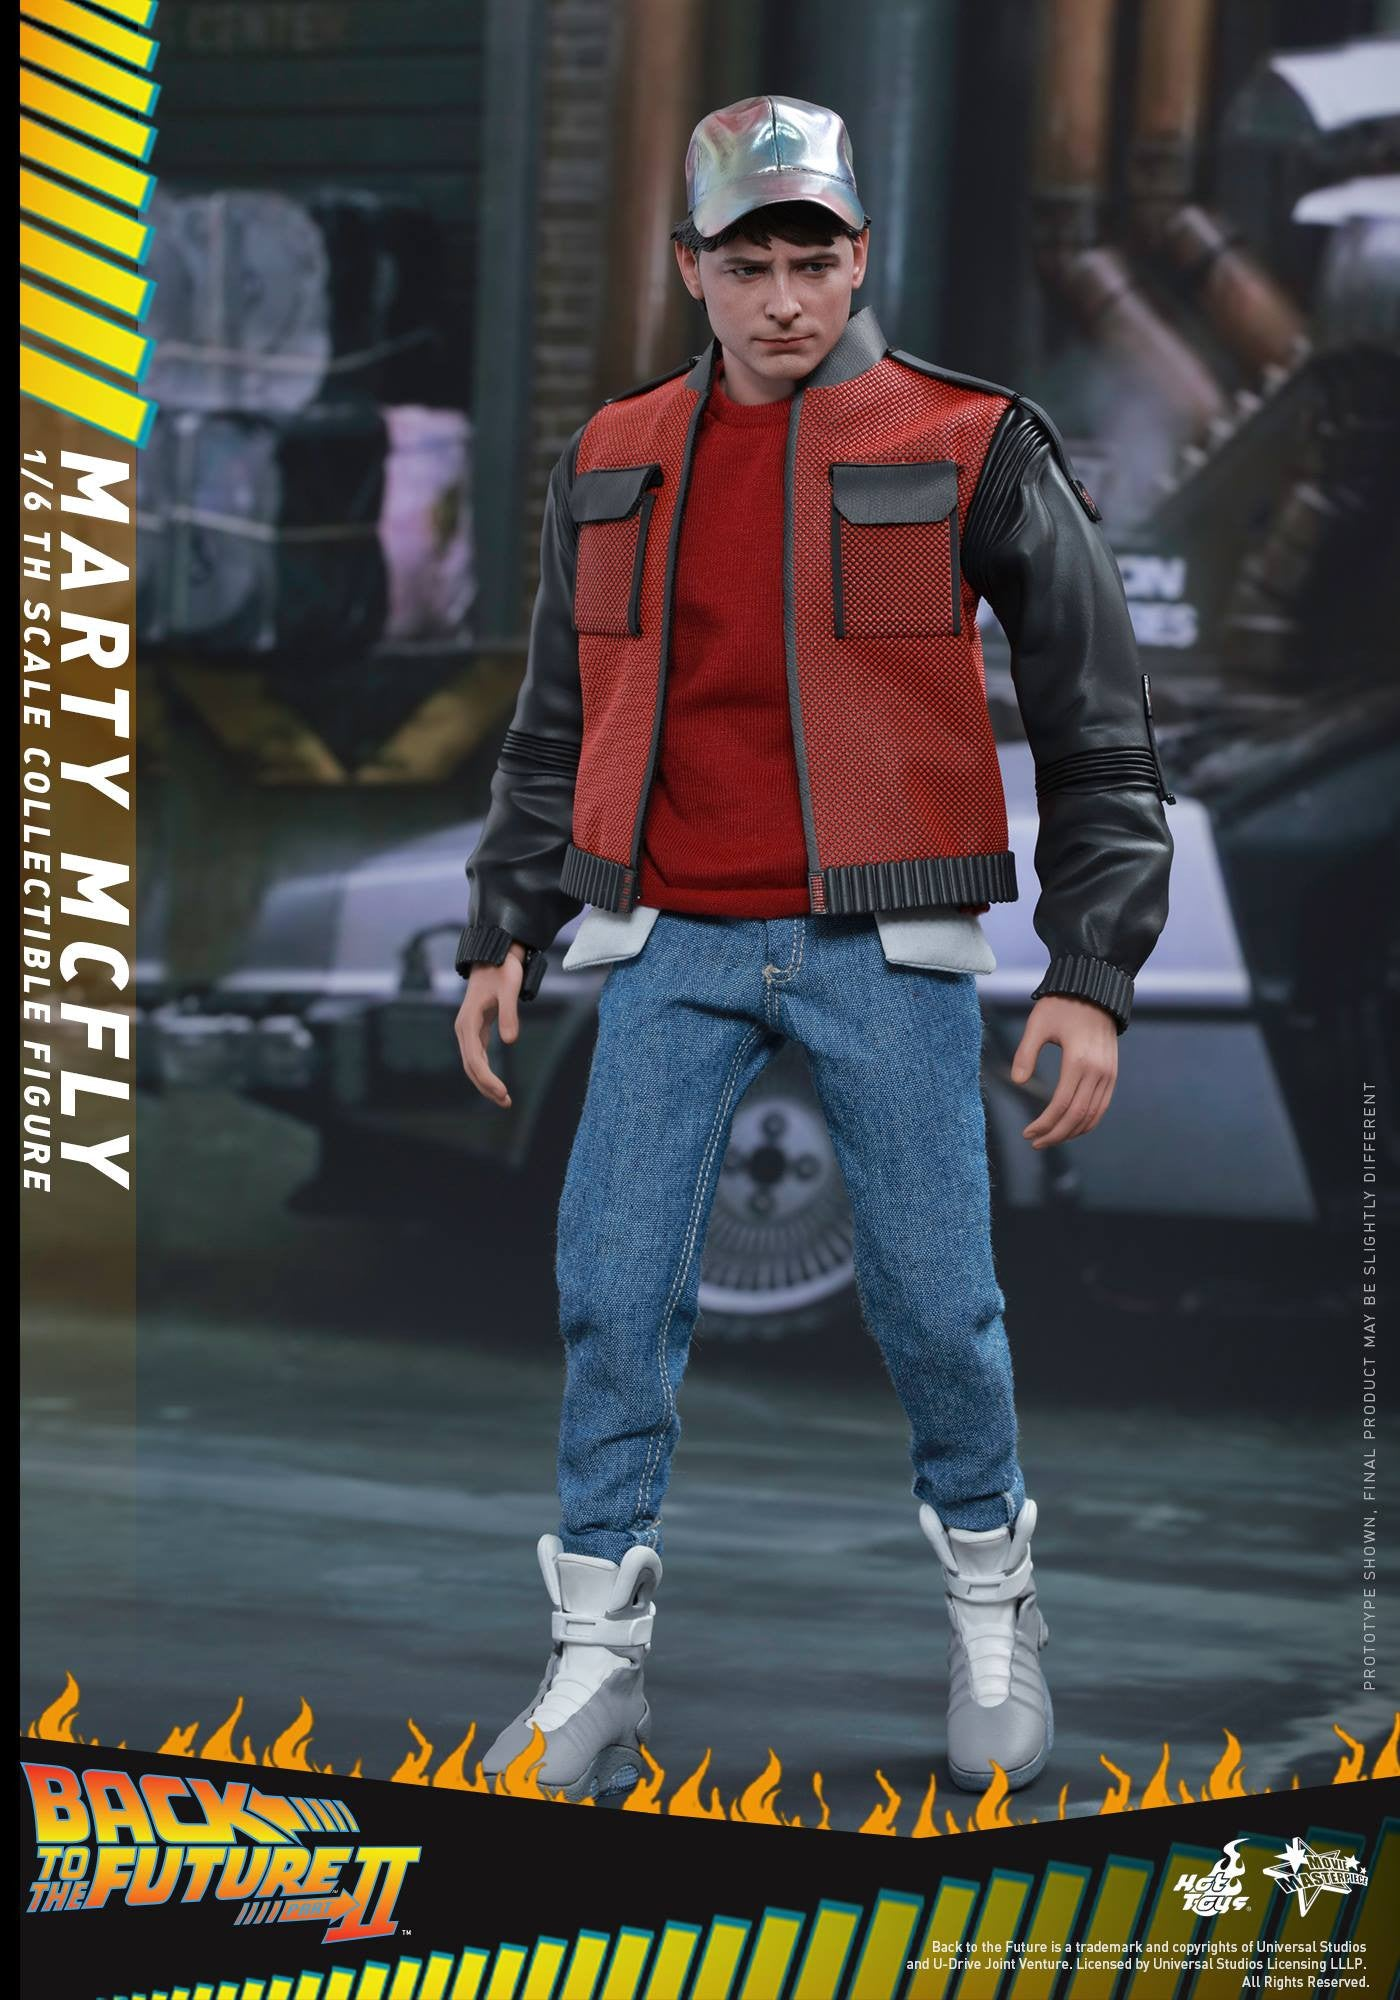 Hot Toys - MMS379 - Back to The Future Part II - Marty McFly (Normal Edition) - Marvelous Toys - 3